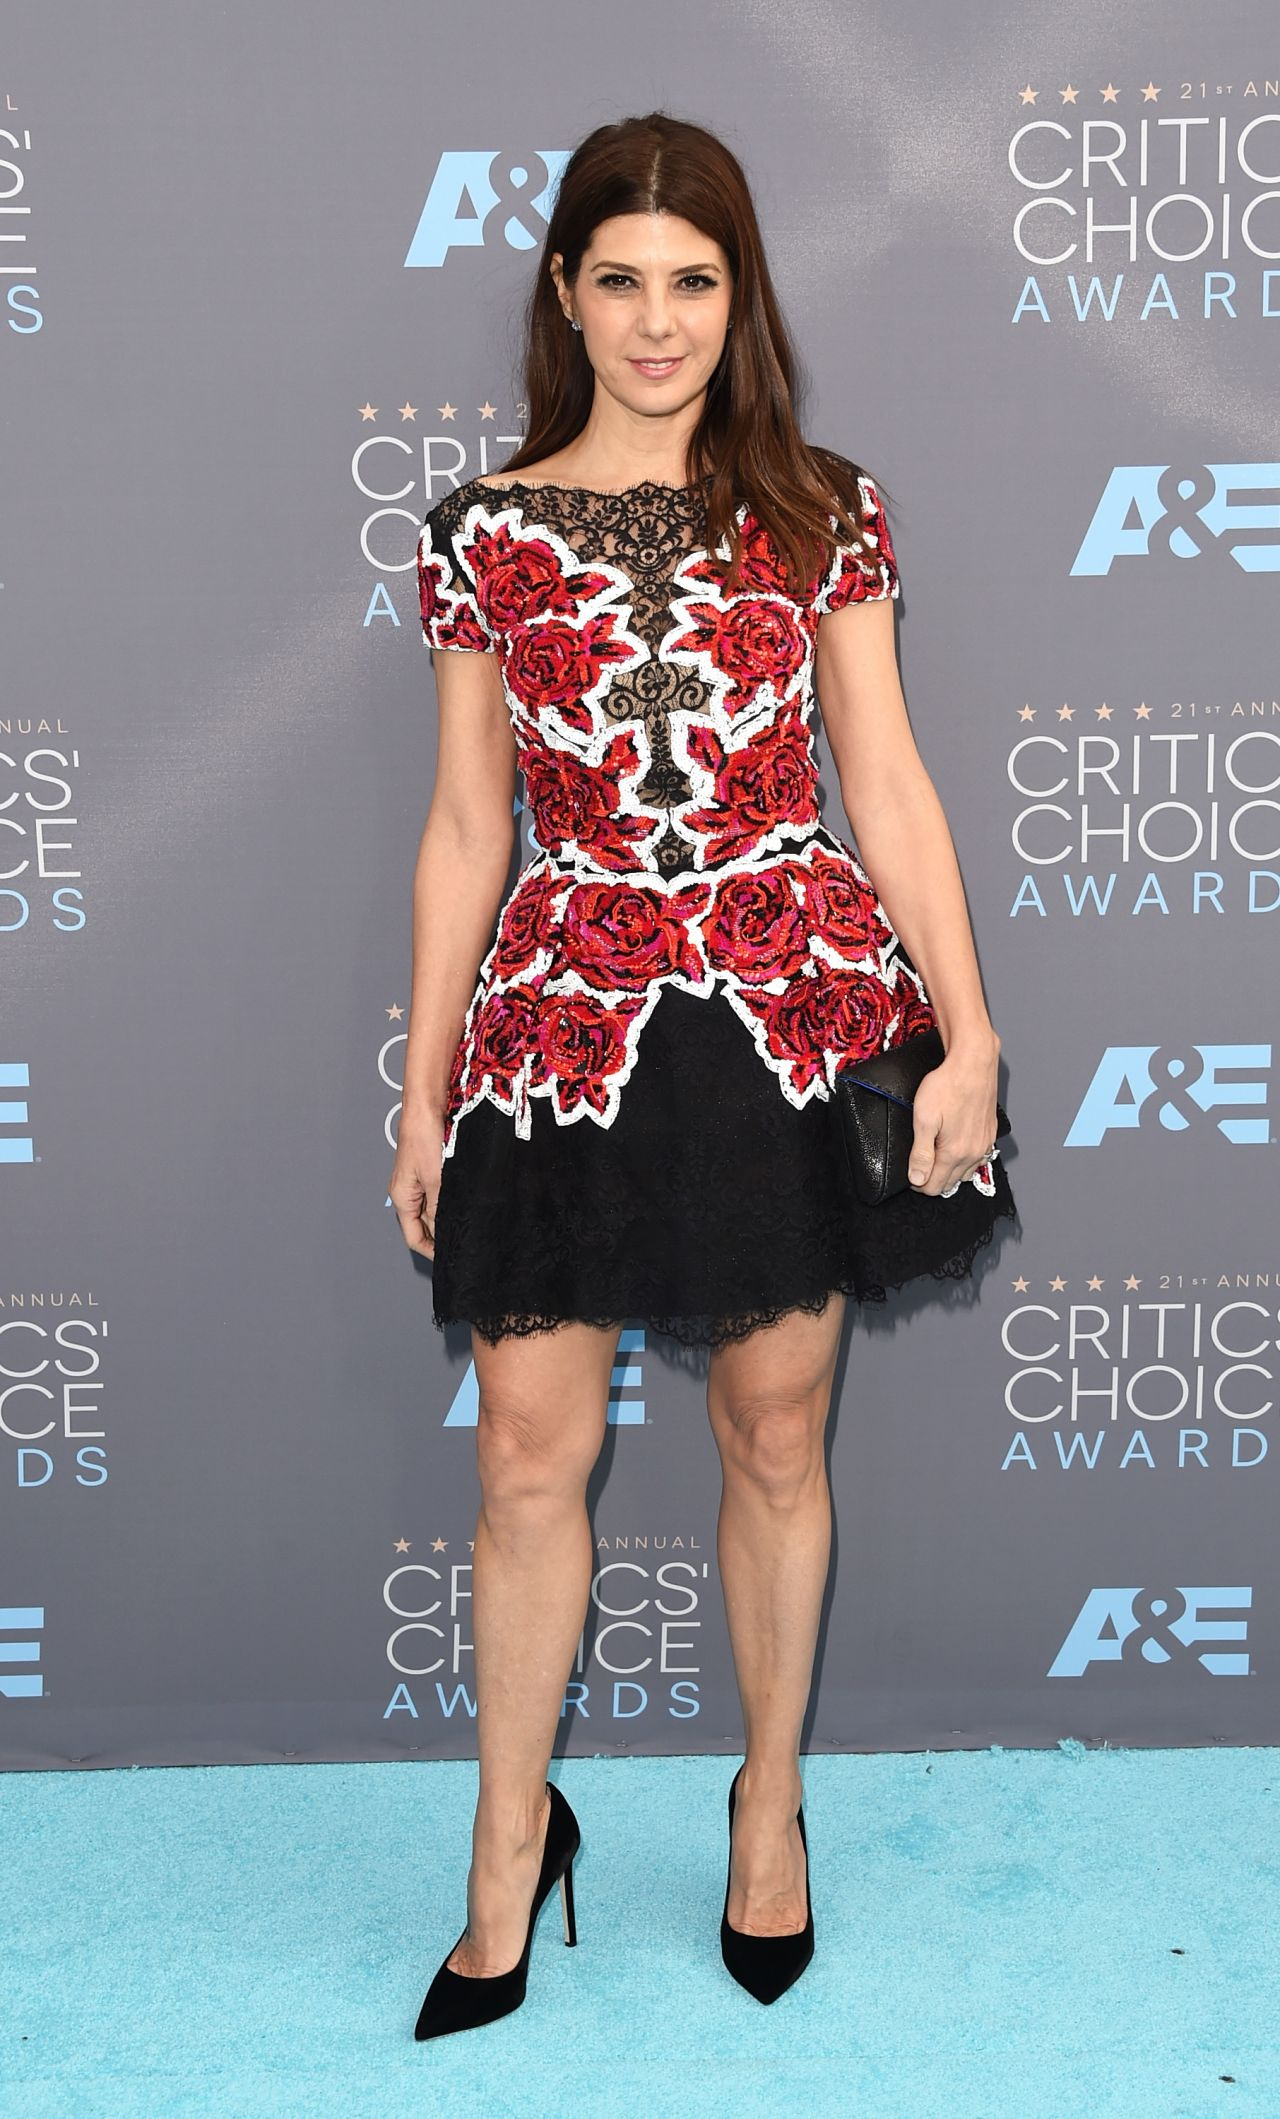 marisa-tomei-2016-critics-choice-awards-in-santa-monica-2